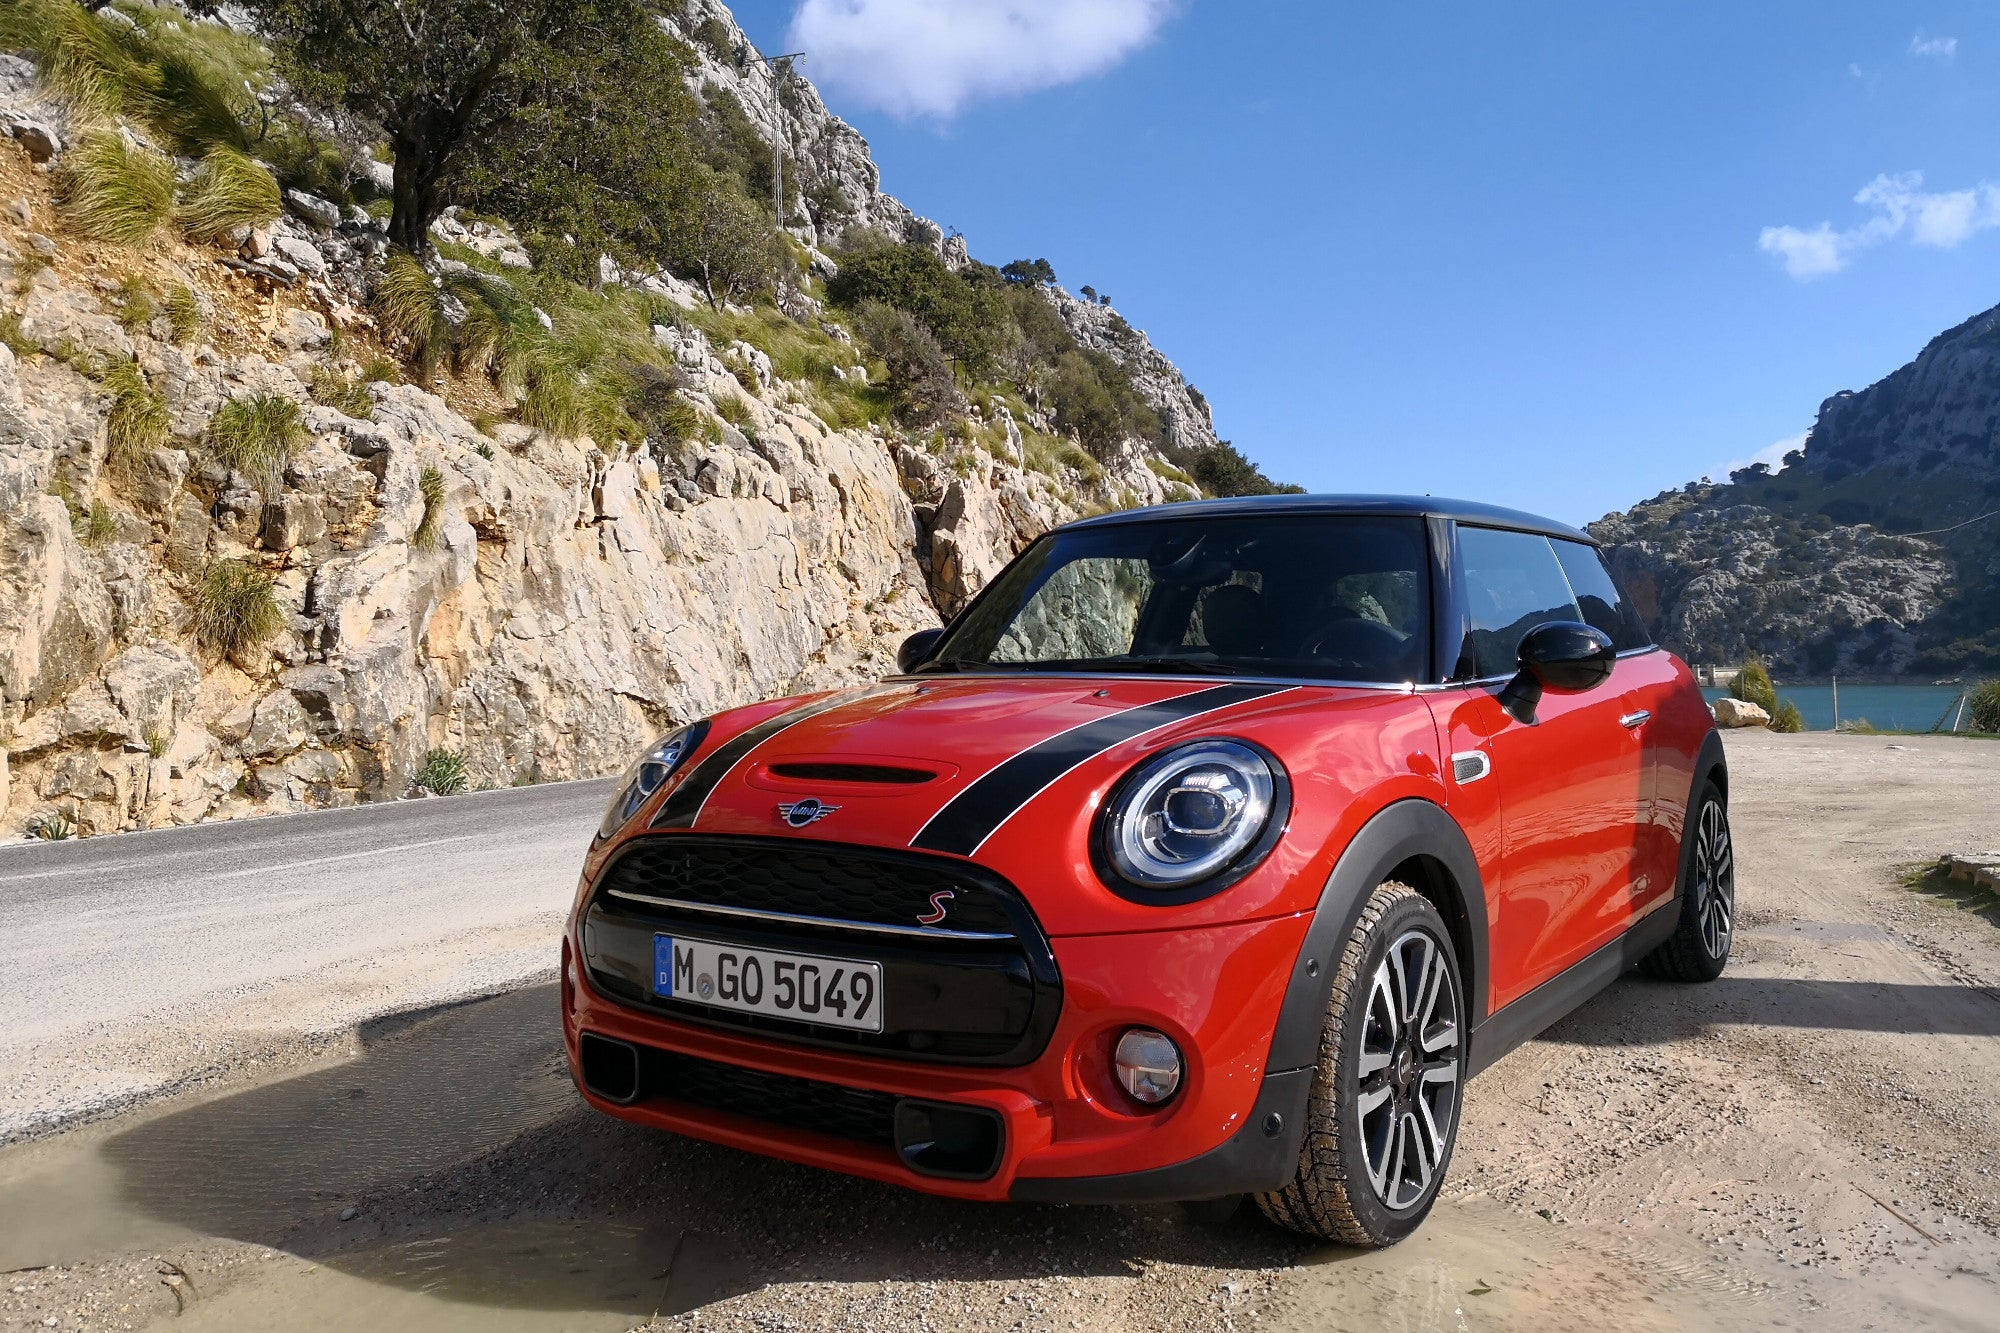 New 2018 Mini Models First Drive Of The Latest Cooper S